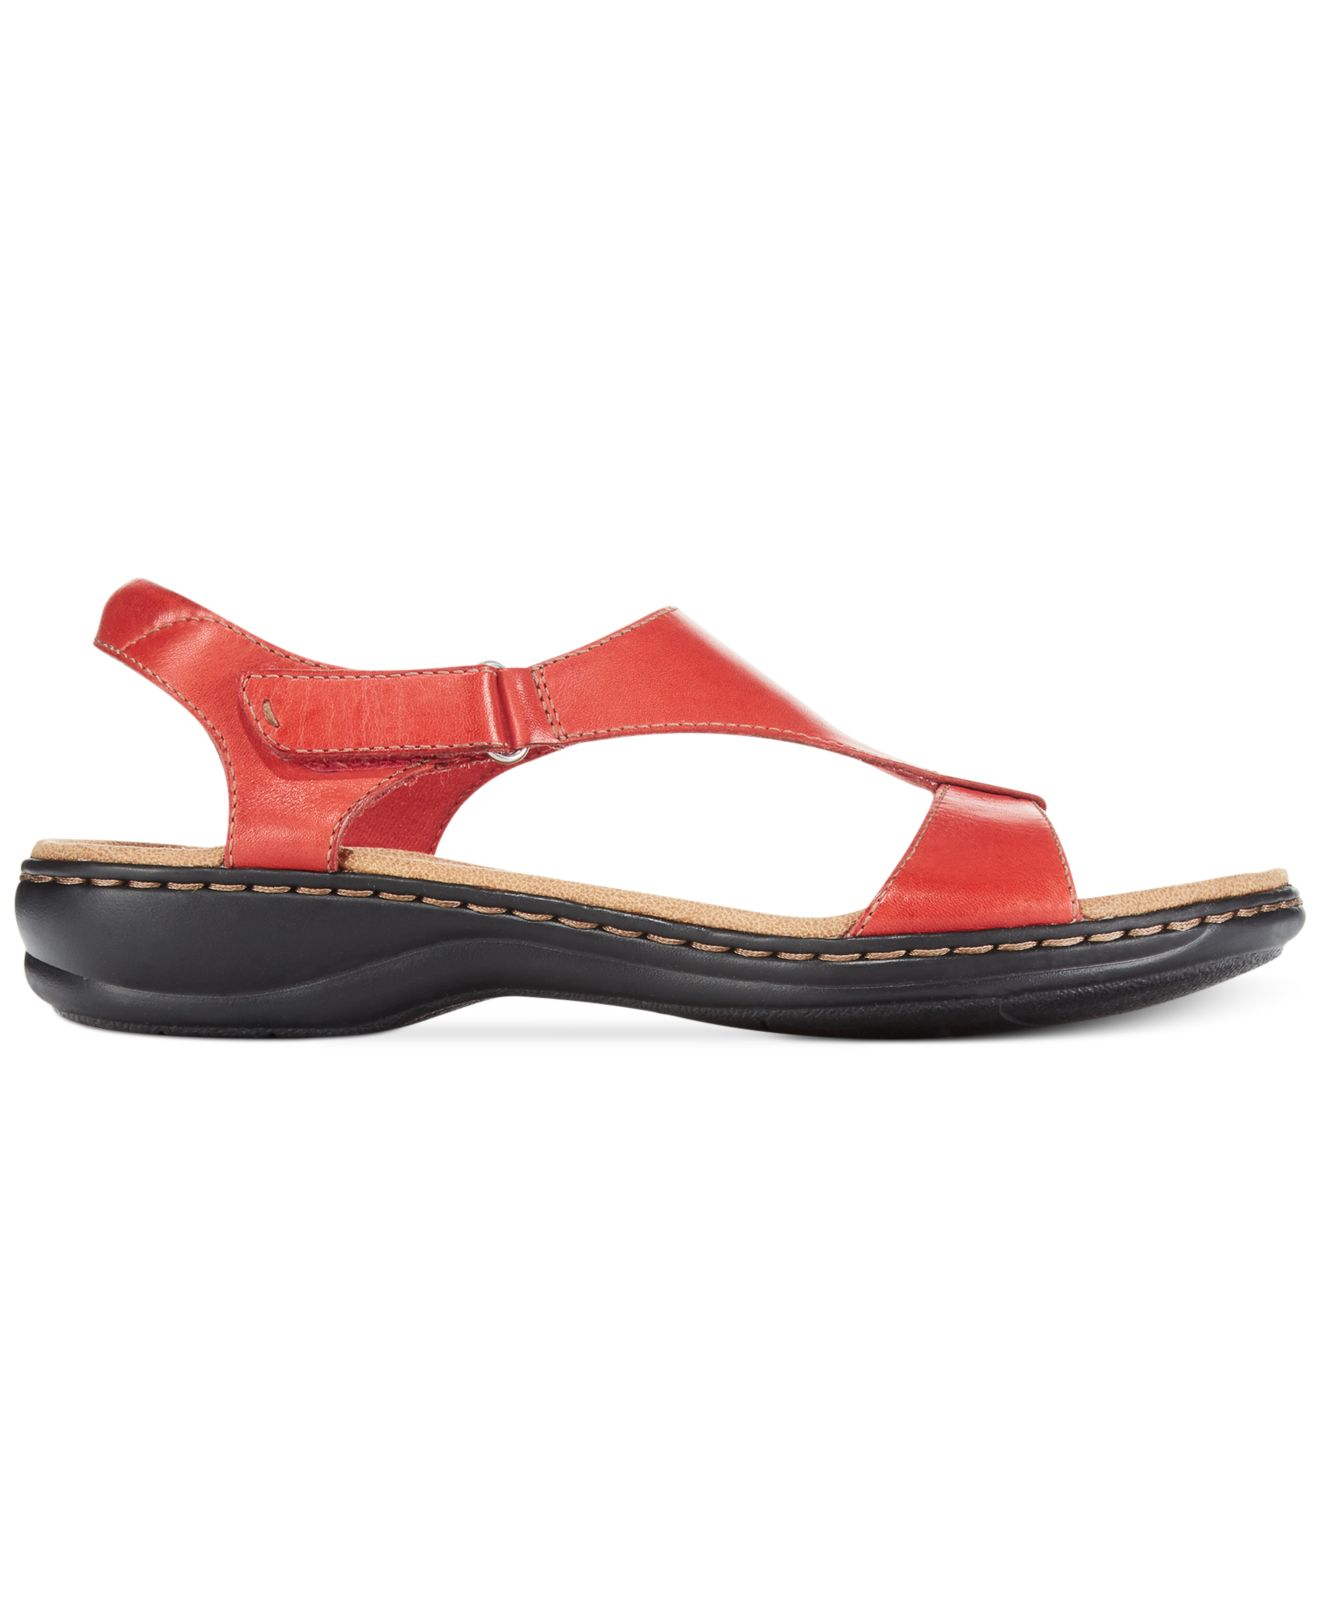 Clarks Collection Women S Leisa Foliage Flat Sandals In